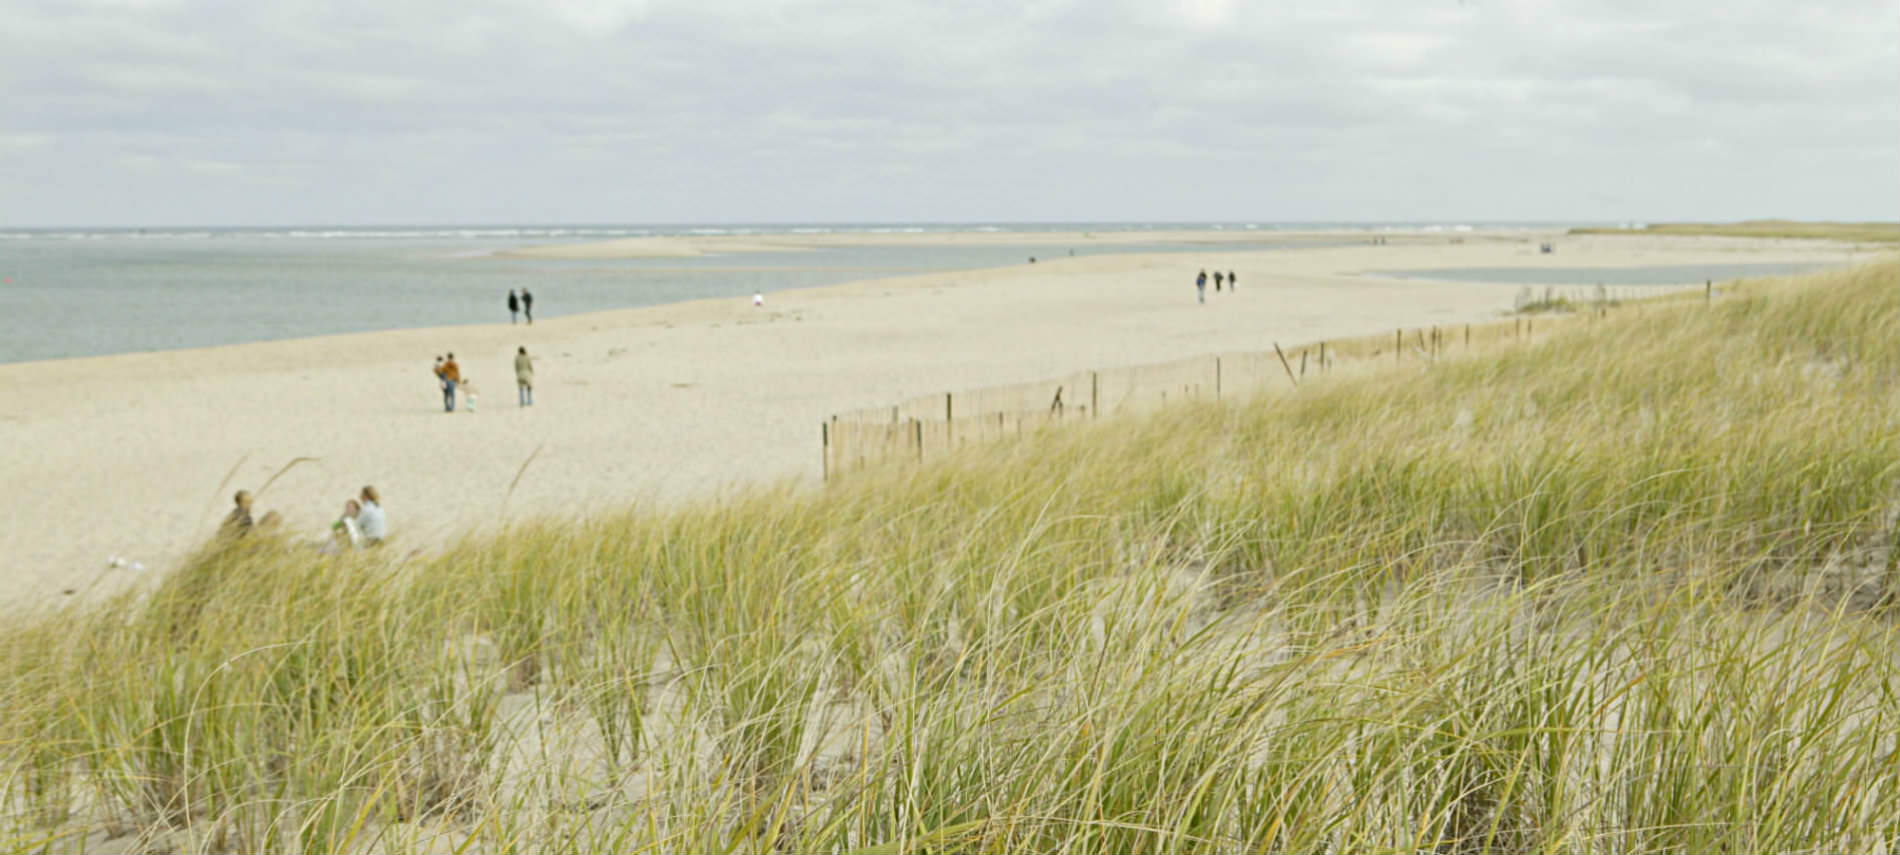 People walk down a sandy beach fronted by tall sea grass on a cloudy day.